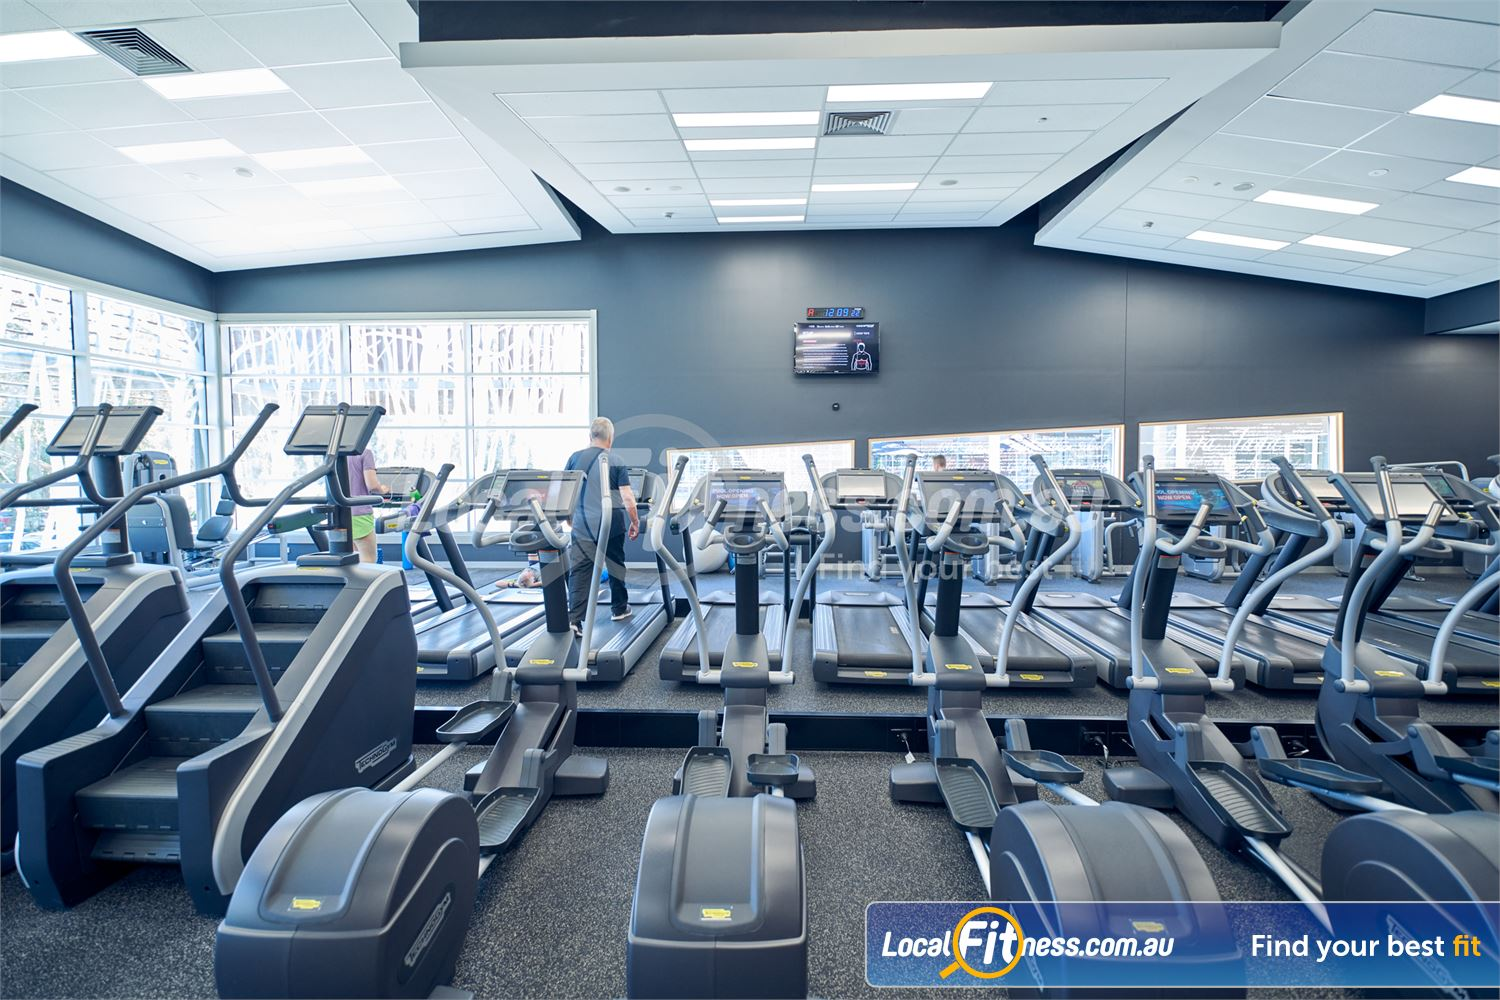 Eltham Leisure Centre Eltham A full range of cardio inc. treadmills, cross trainers and more.